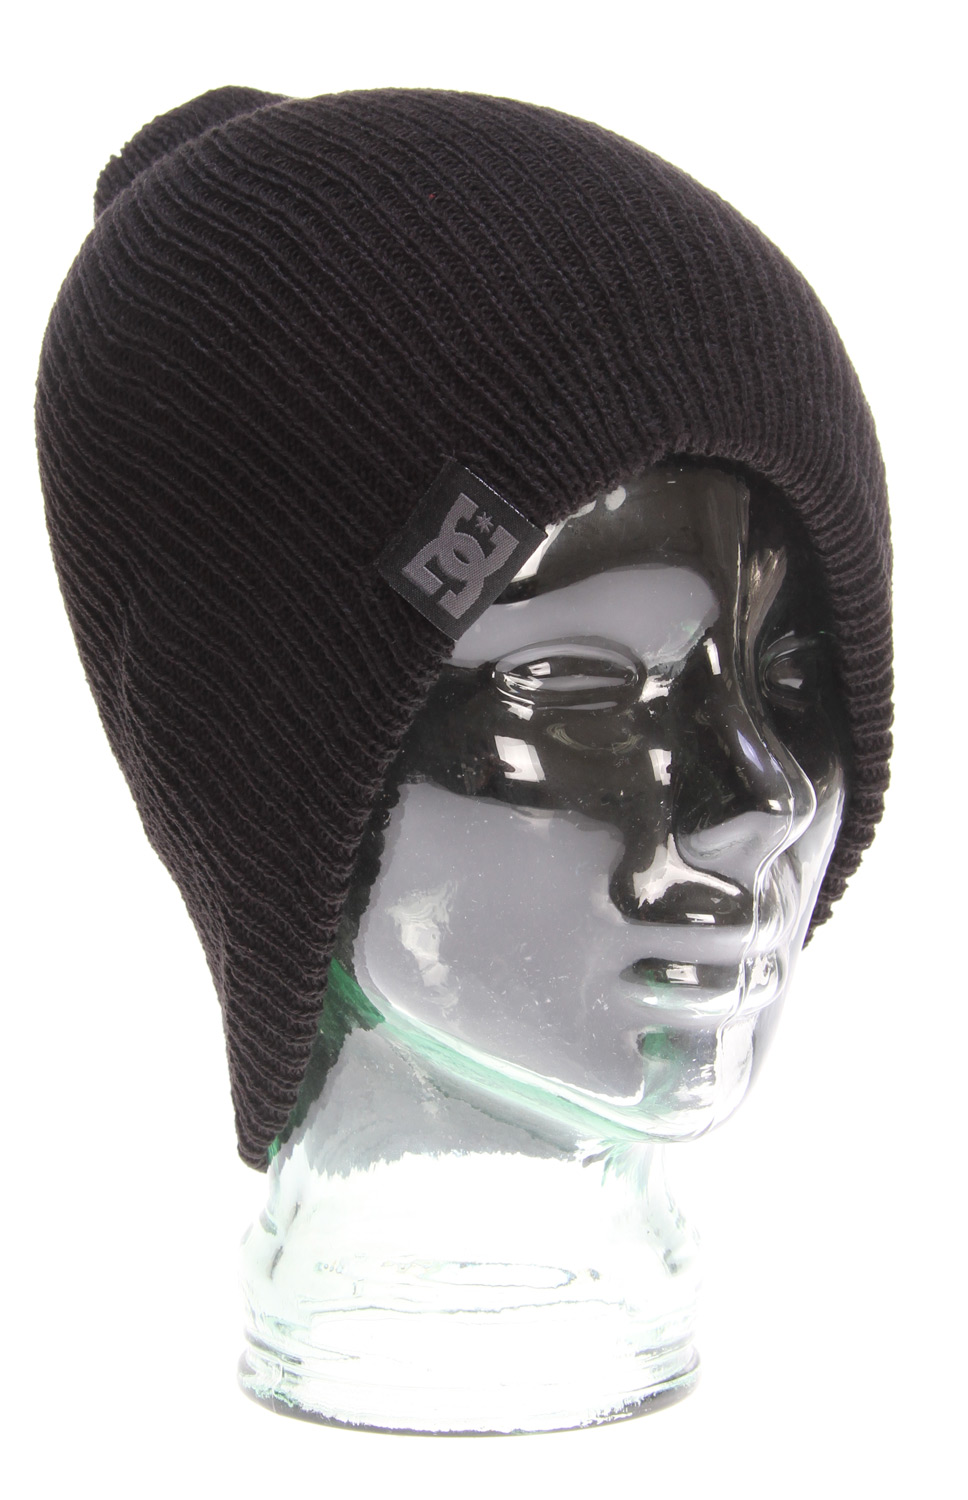 Key Features of the DC Yepa Beanie: Slouch fit beanie 100% acrylic - $19.95